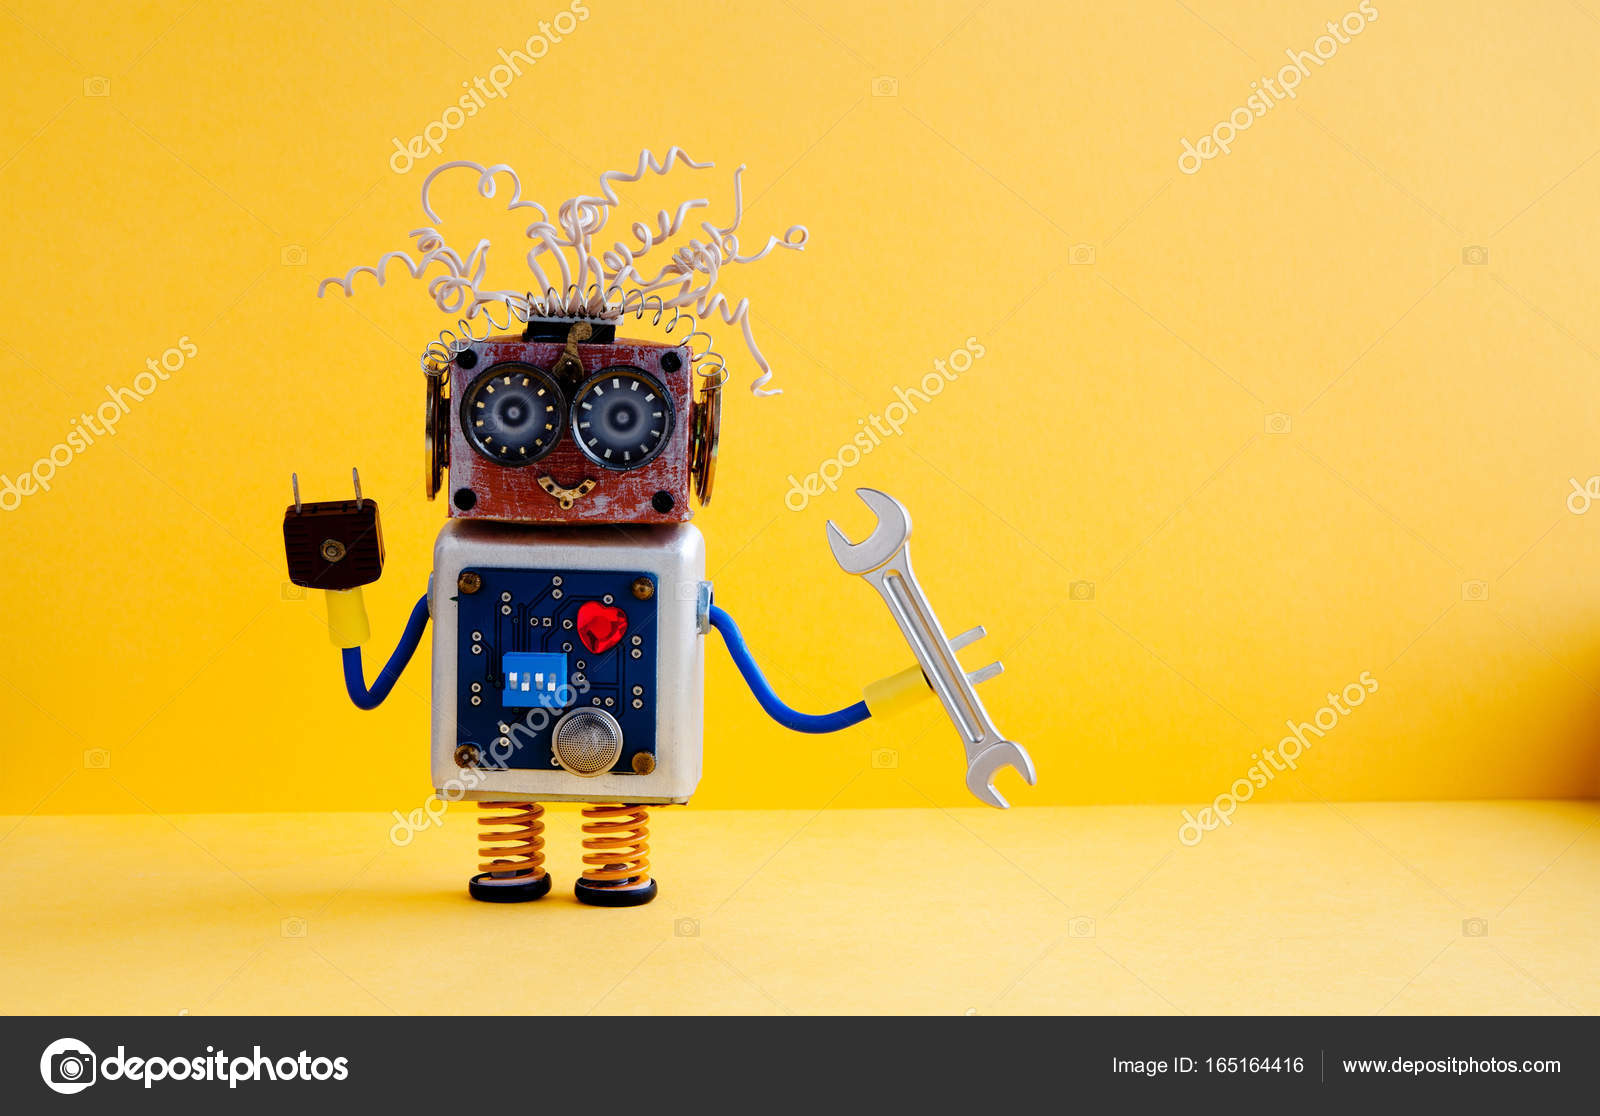 Repair Service Robot Handyman Hand Wrench Creative Design Cyborg Wiring Circuits For Robotics Toy Electric Wires Hairstyle